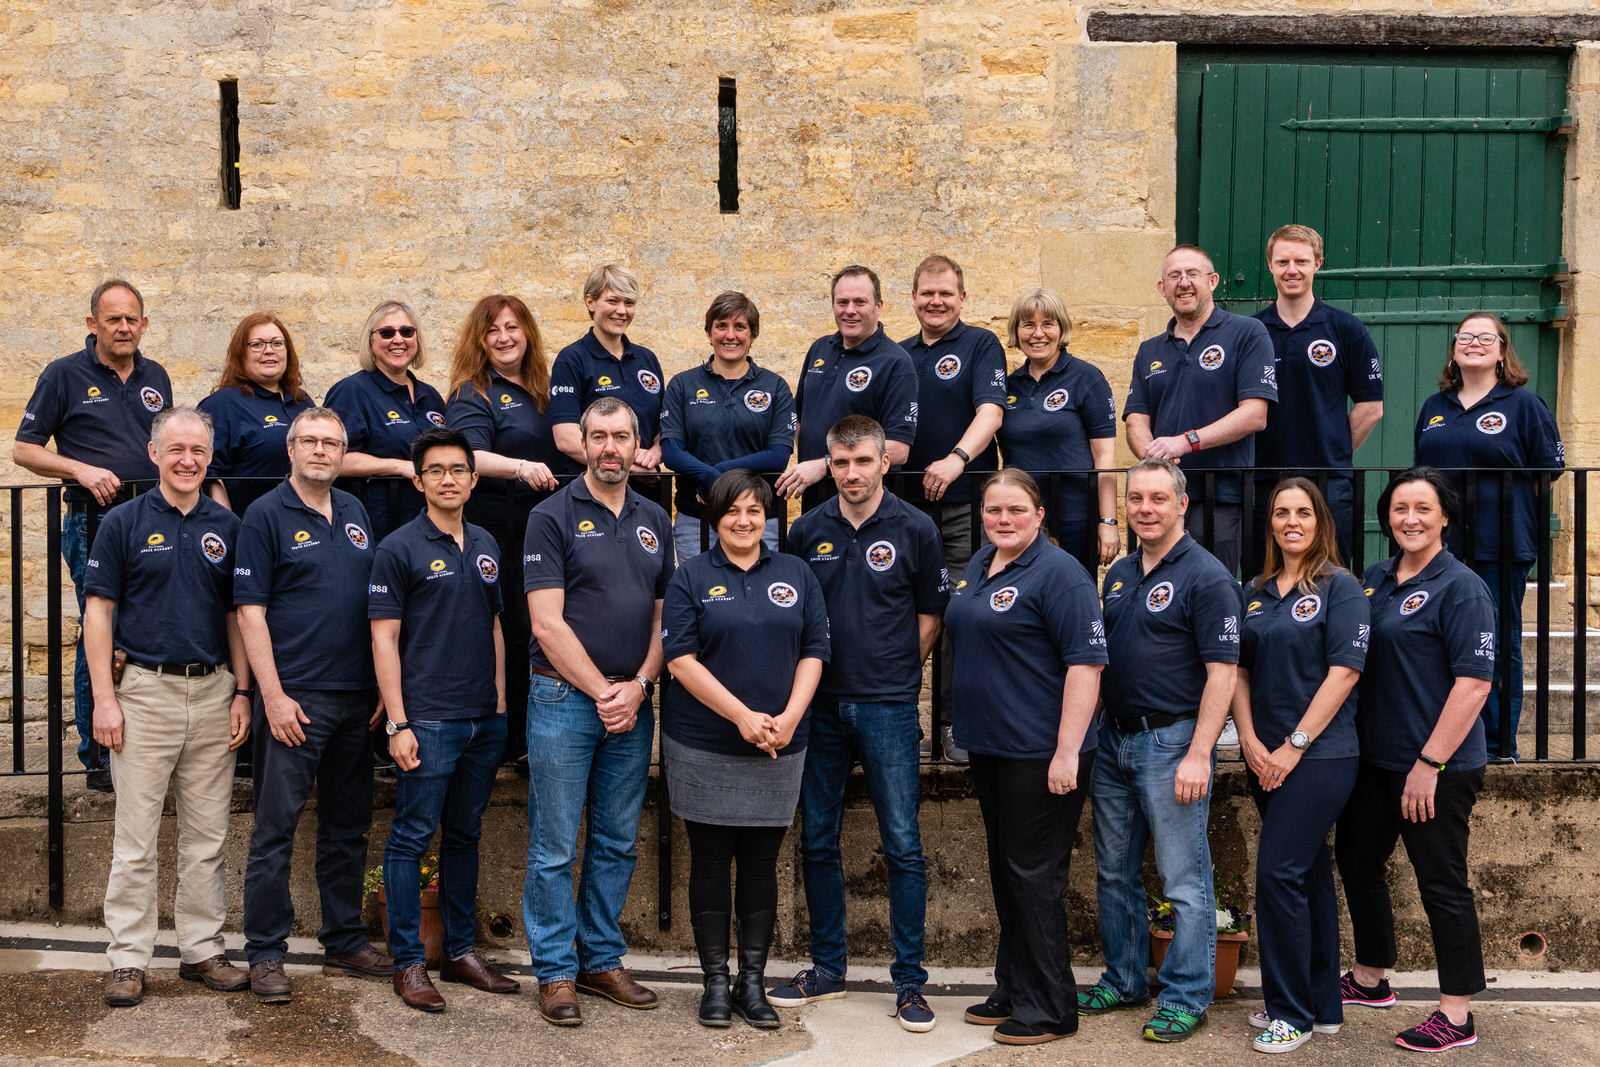 National Space Academy Team at Woolsthorpe Manor